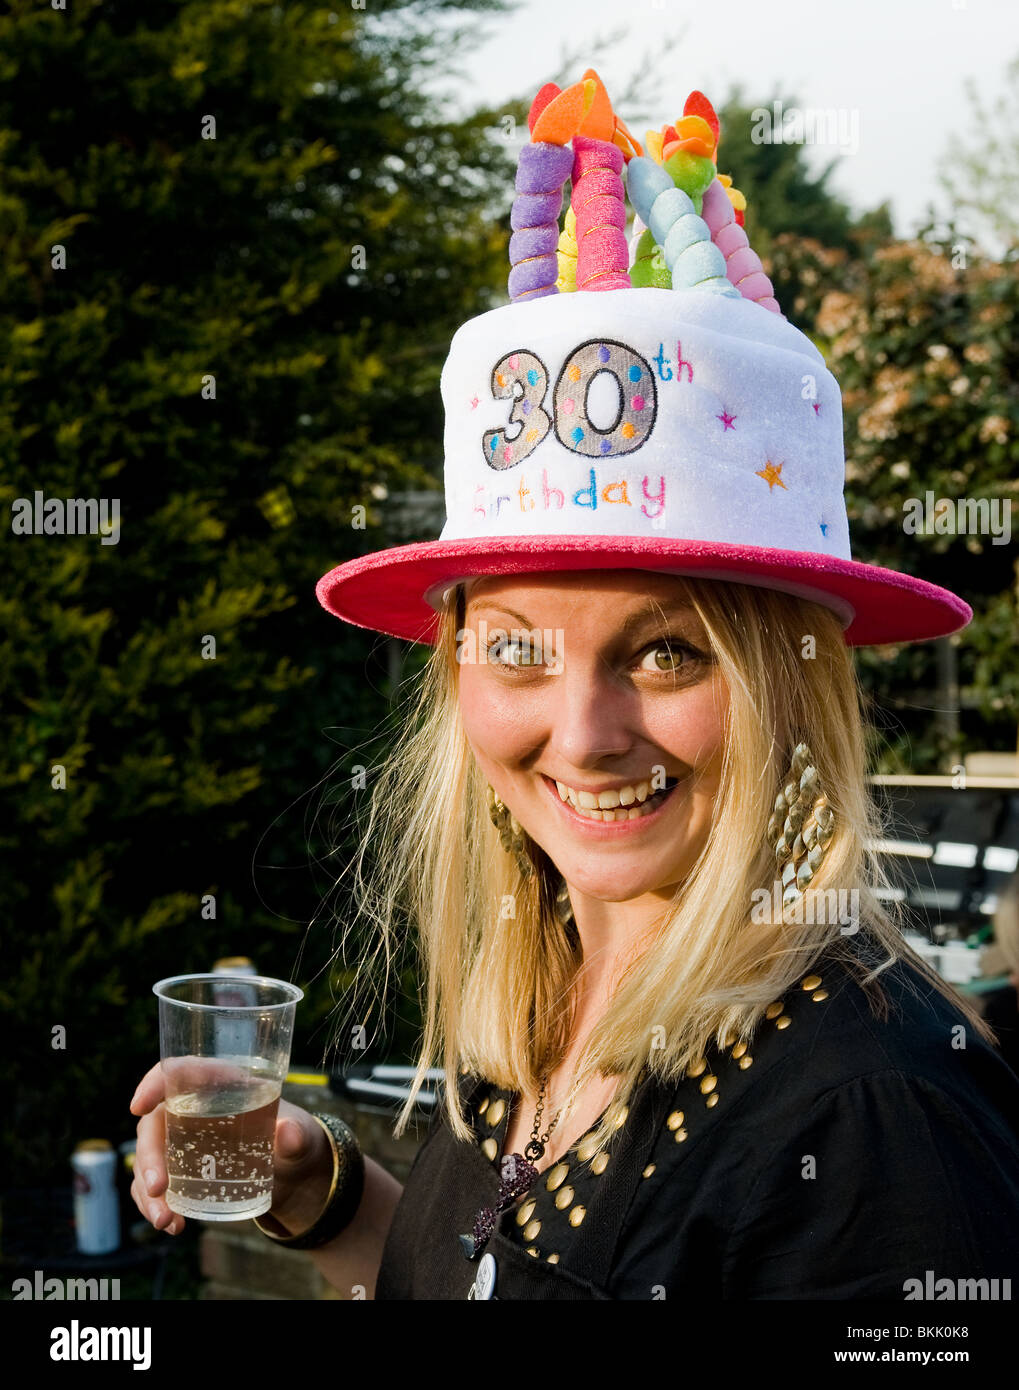 A Female Wearing Silly Hat Celebrating Her 30th Birthday